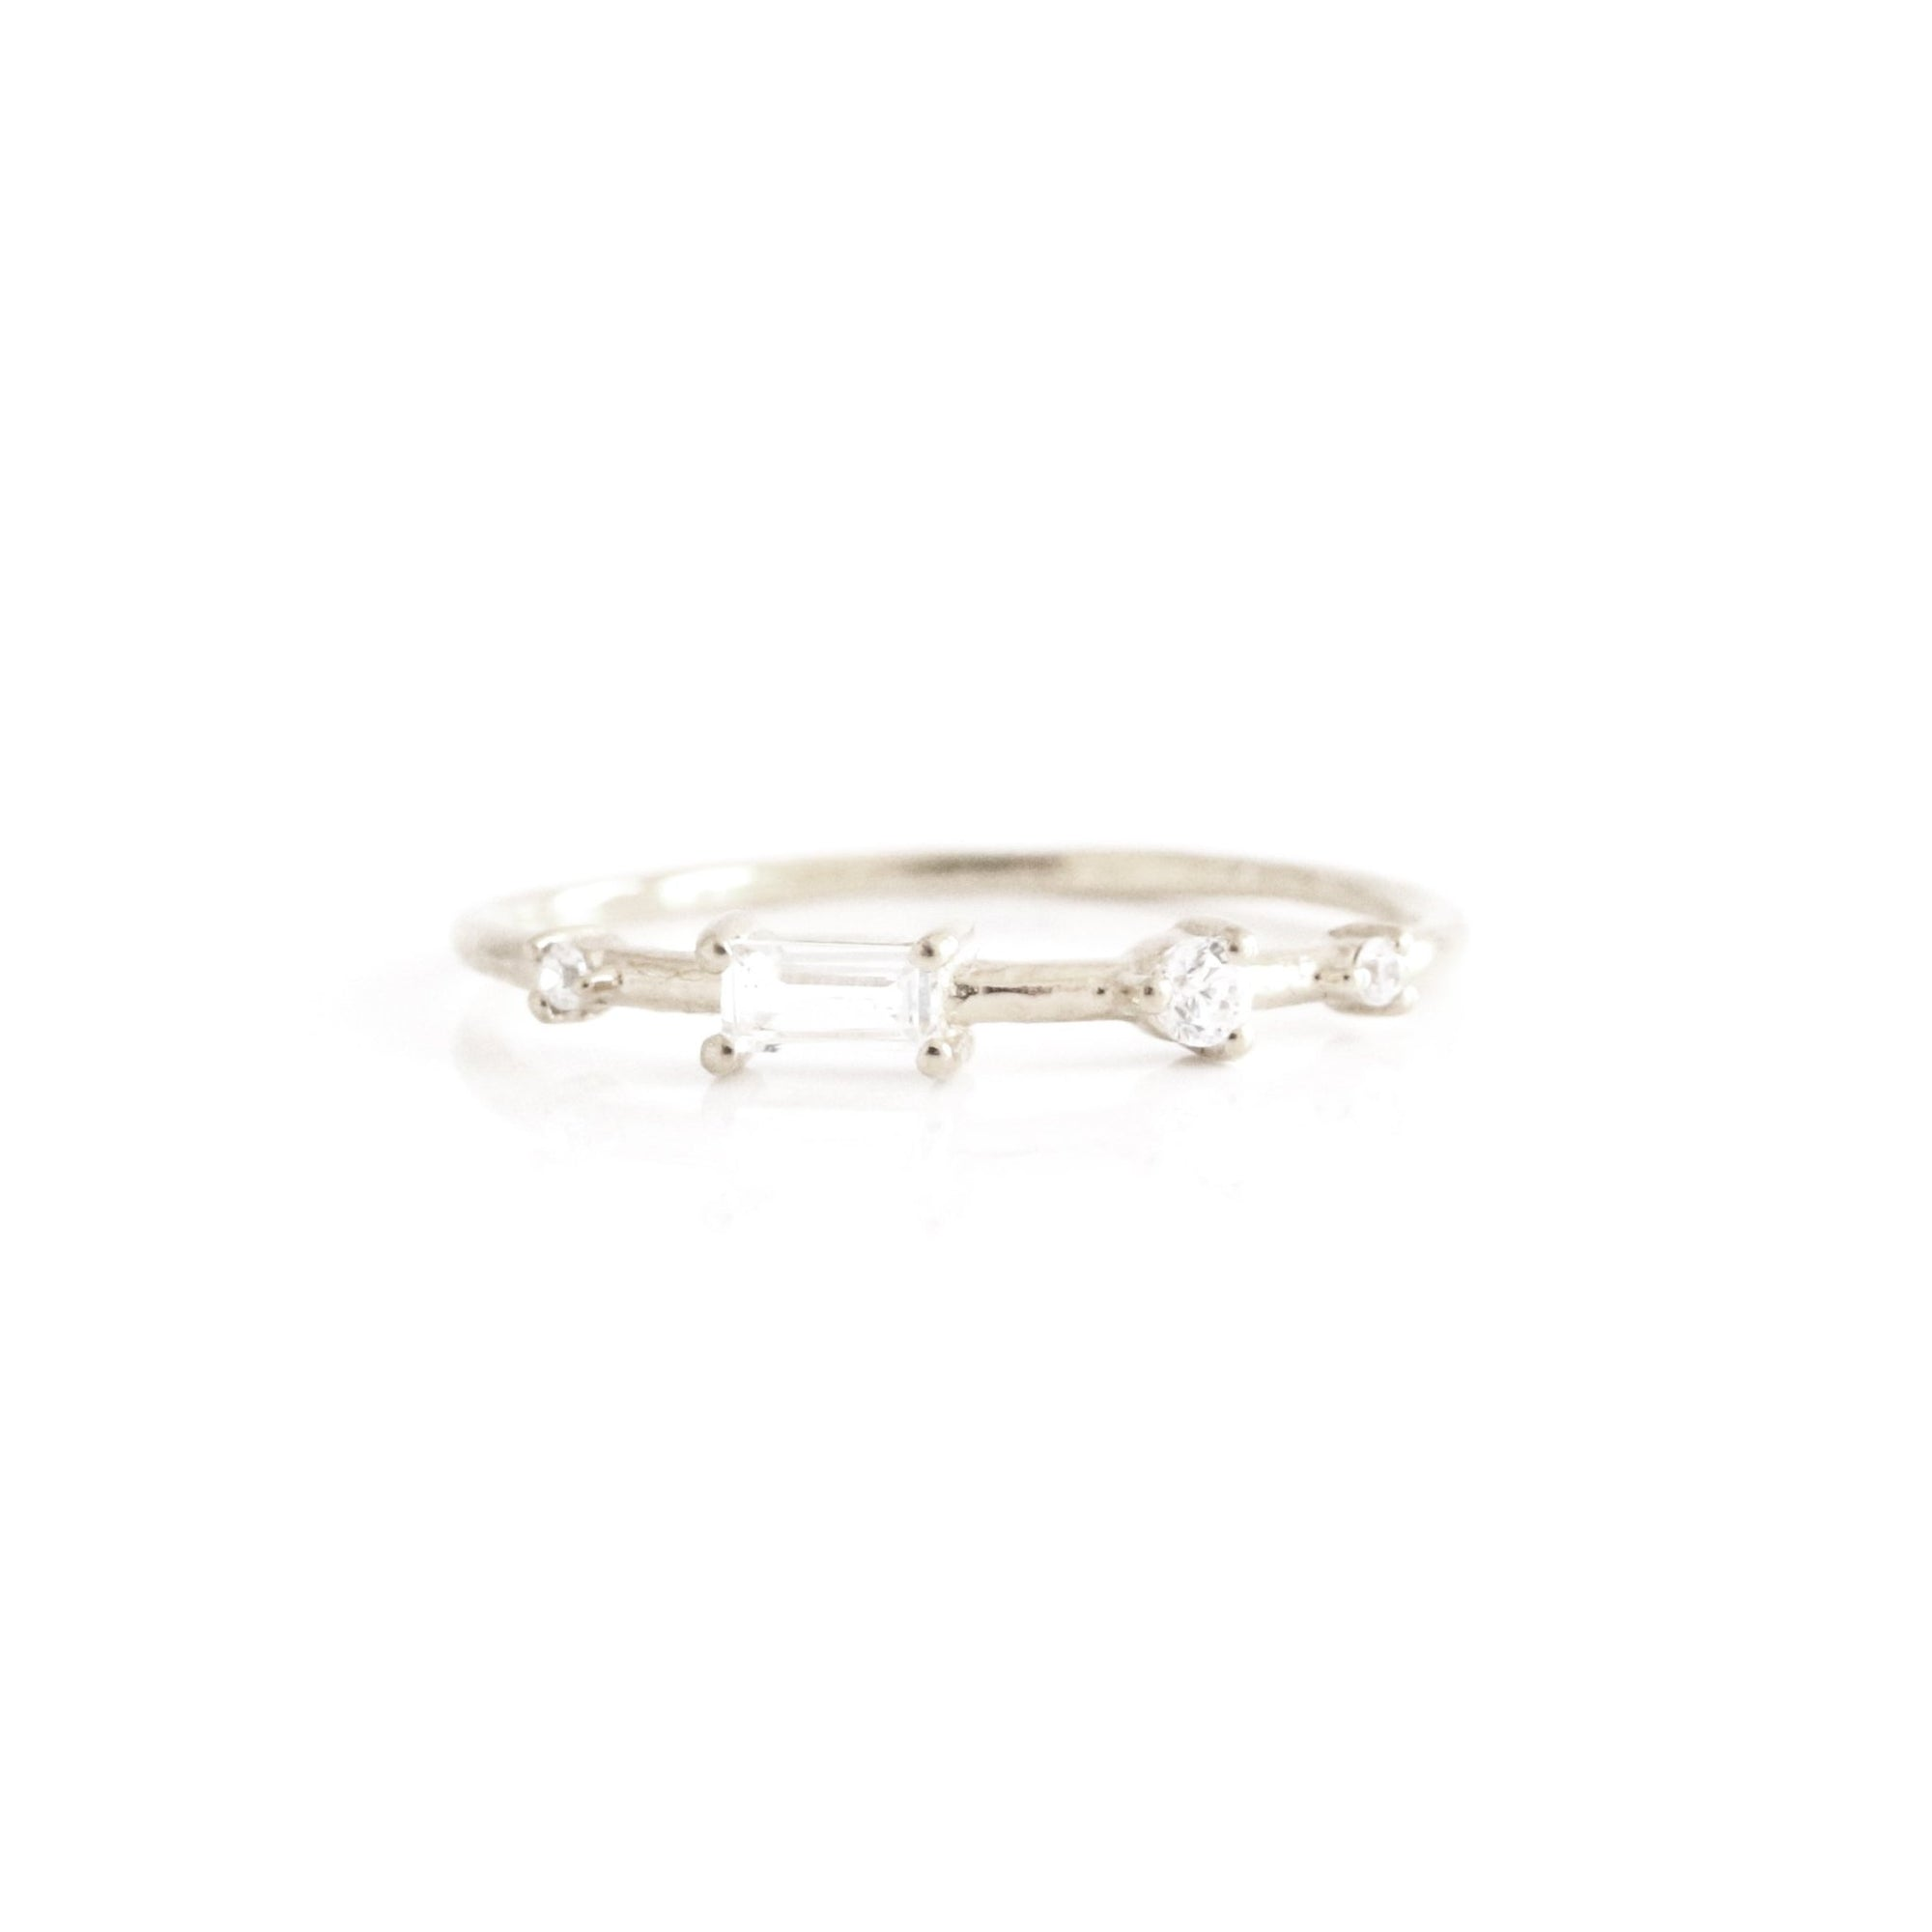 Loyal Dancing Stacking Ring - White Topaz, Cubic Zirconia & Silver - SO PRETTY CARA COTTER